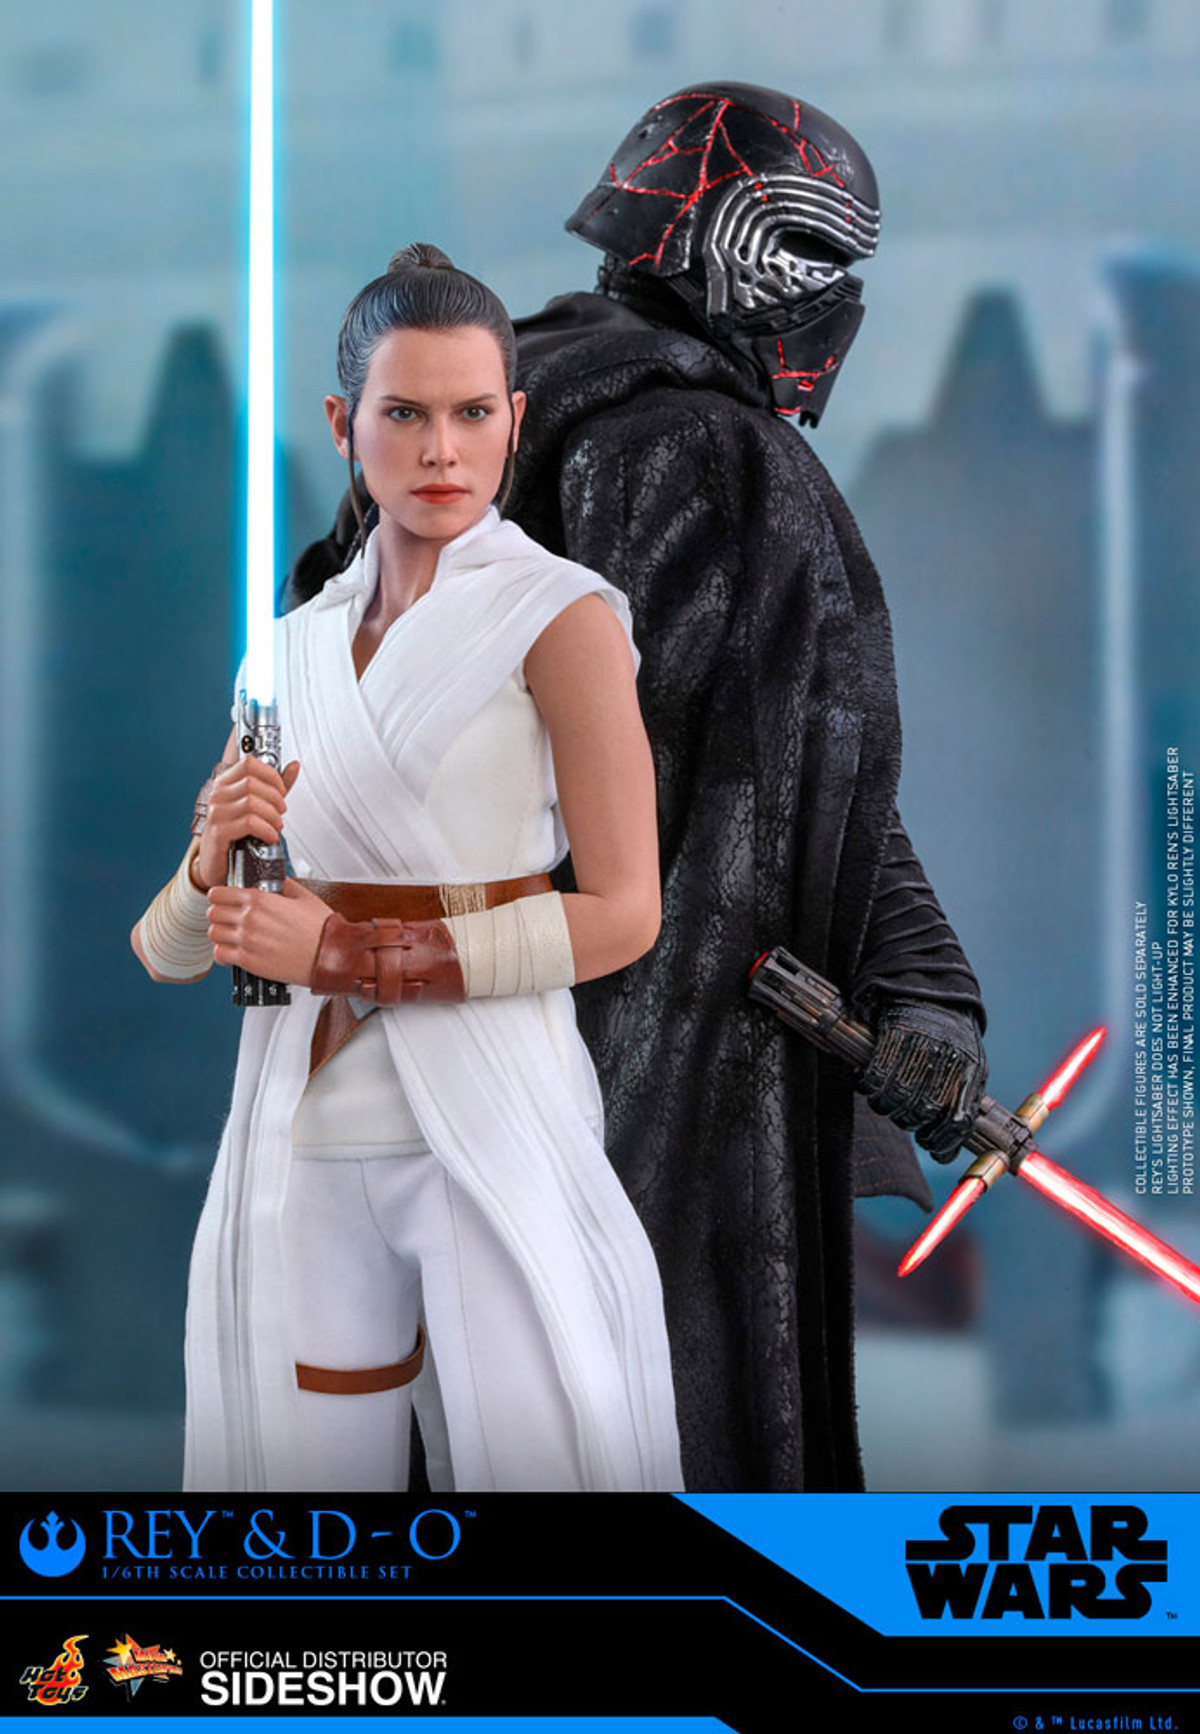 Hot Toys Star Wars The Rise Of Skywalker Rey And D O